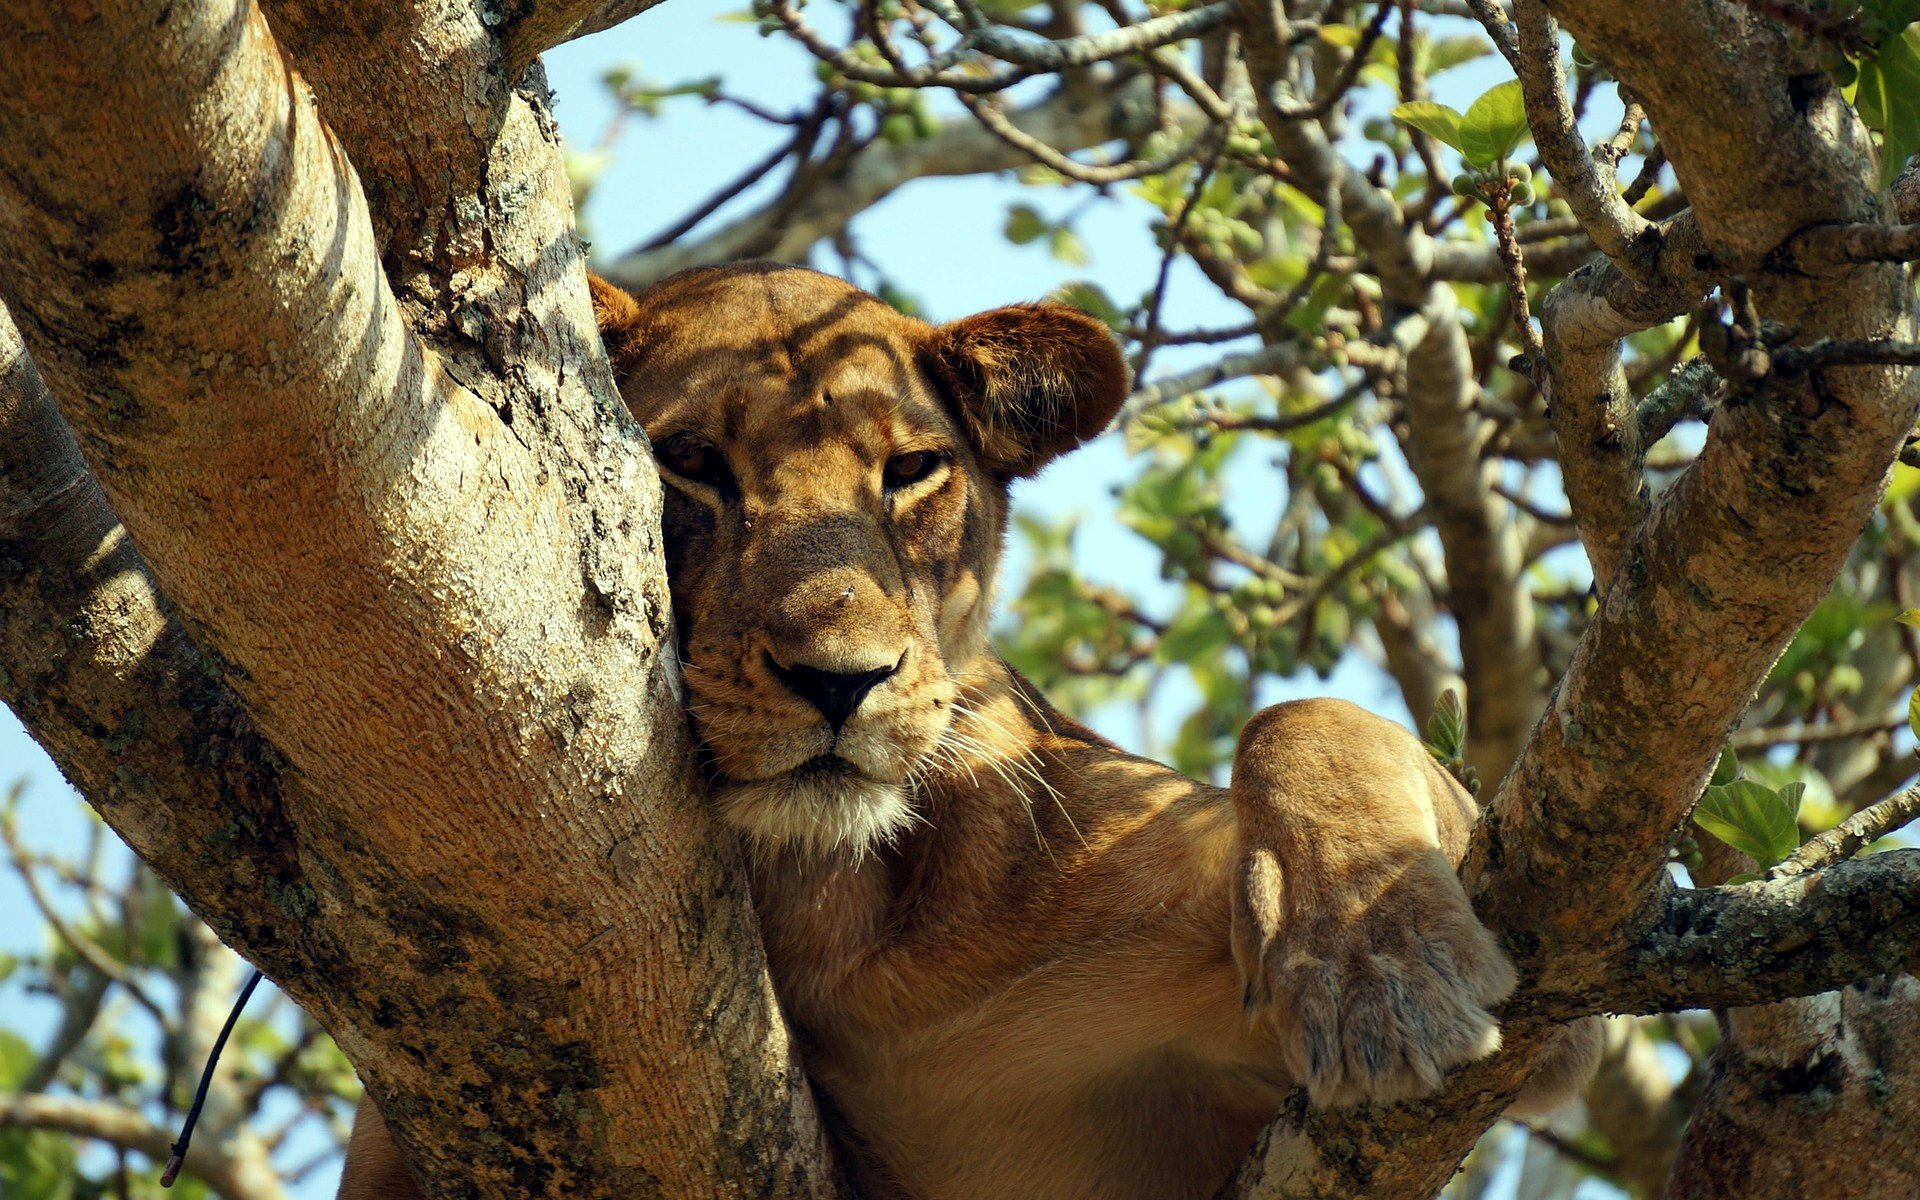 Lions are very social animals and tend to live in prides of related members but did you know that the males in a pride are poor fathers-in-law?